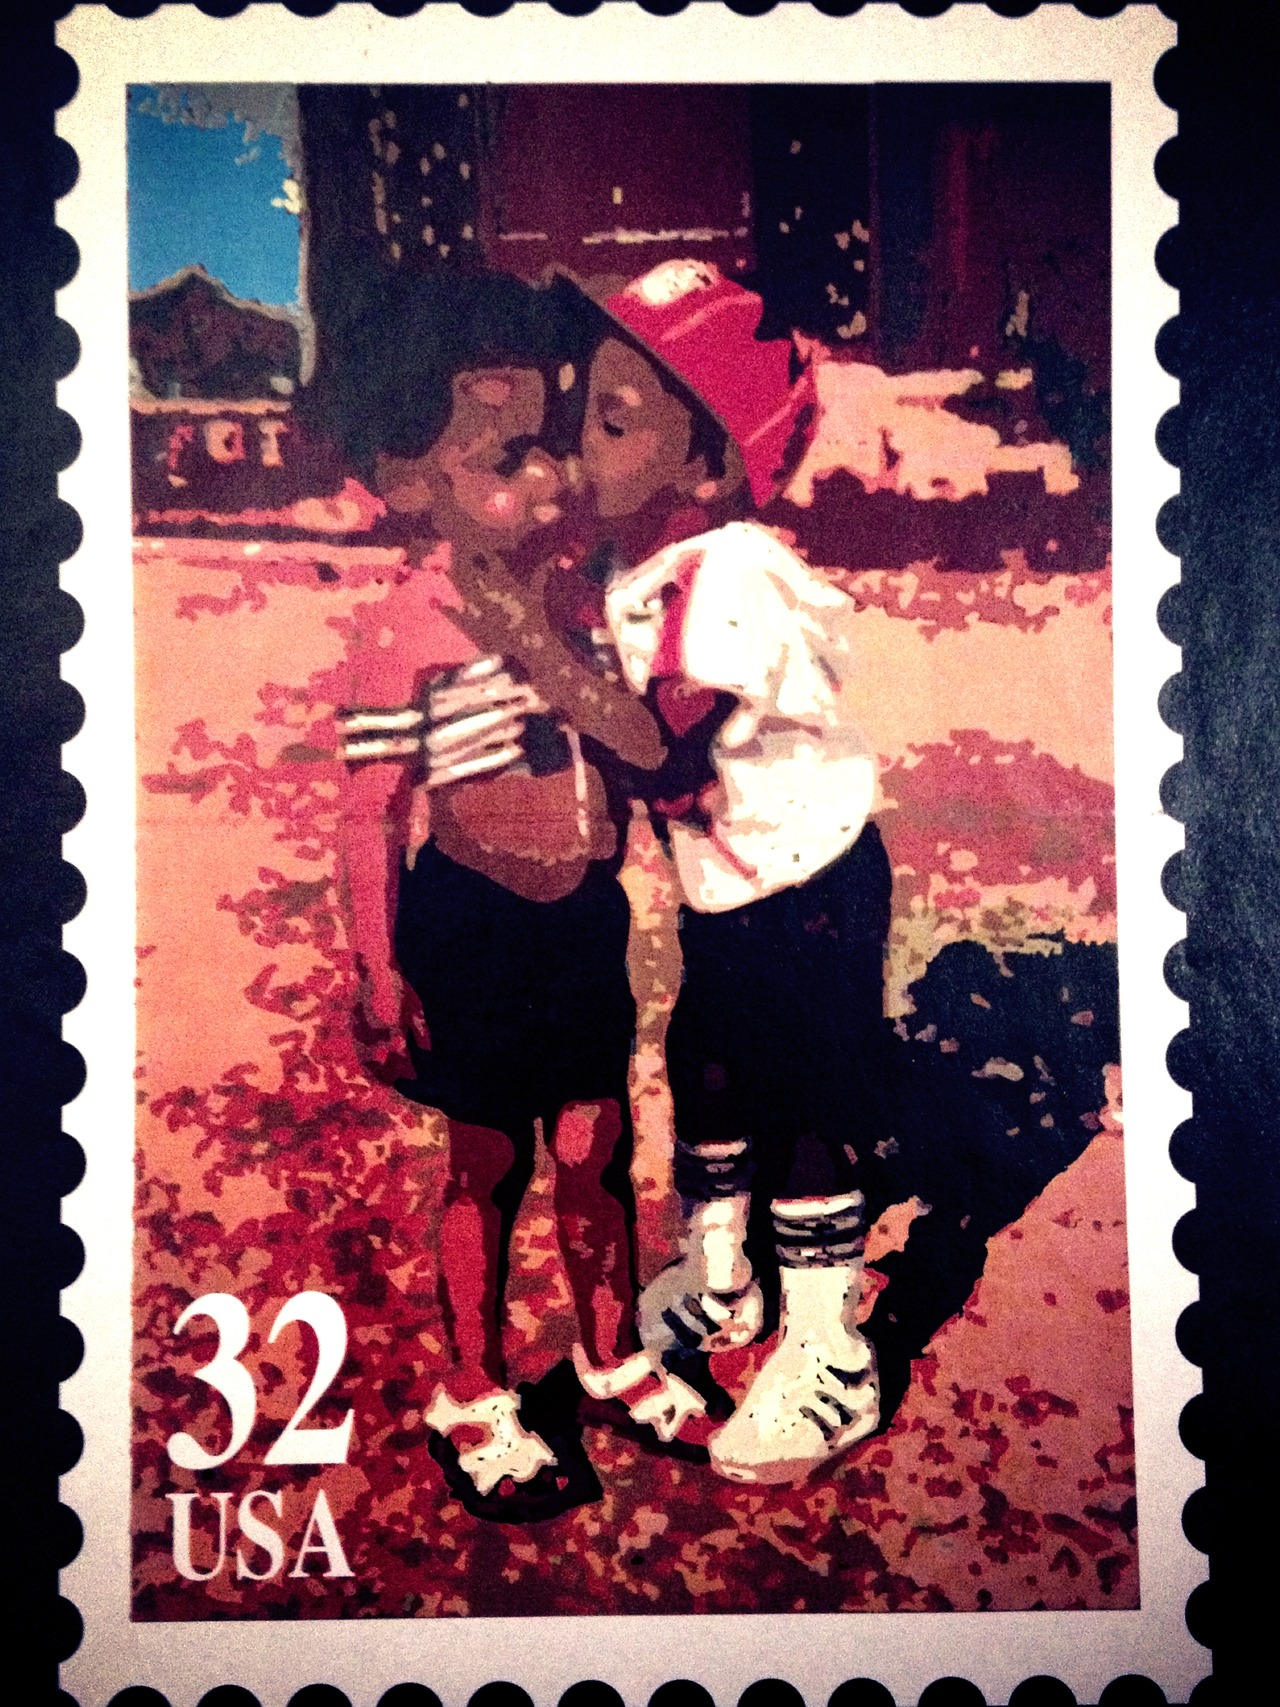 32¢ Kiss #peppersearching #pepper #photos #backindaday #kids #stamp